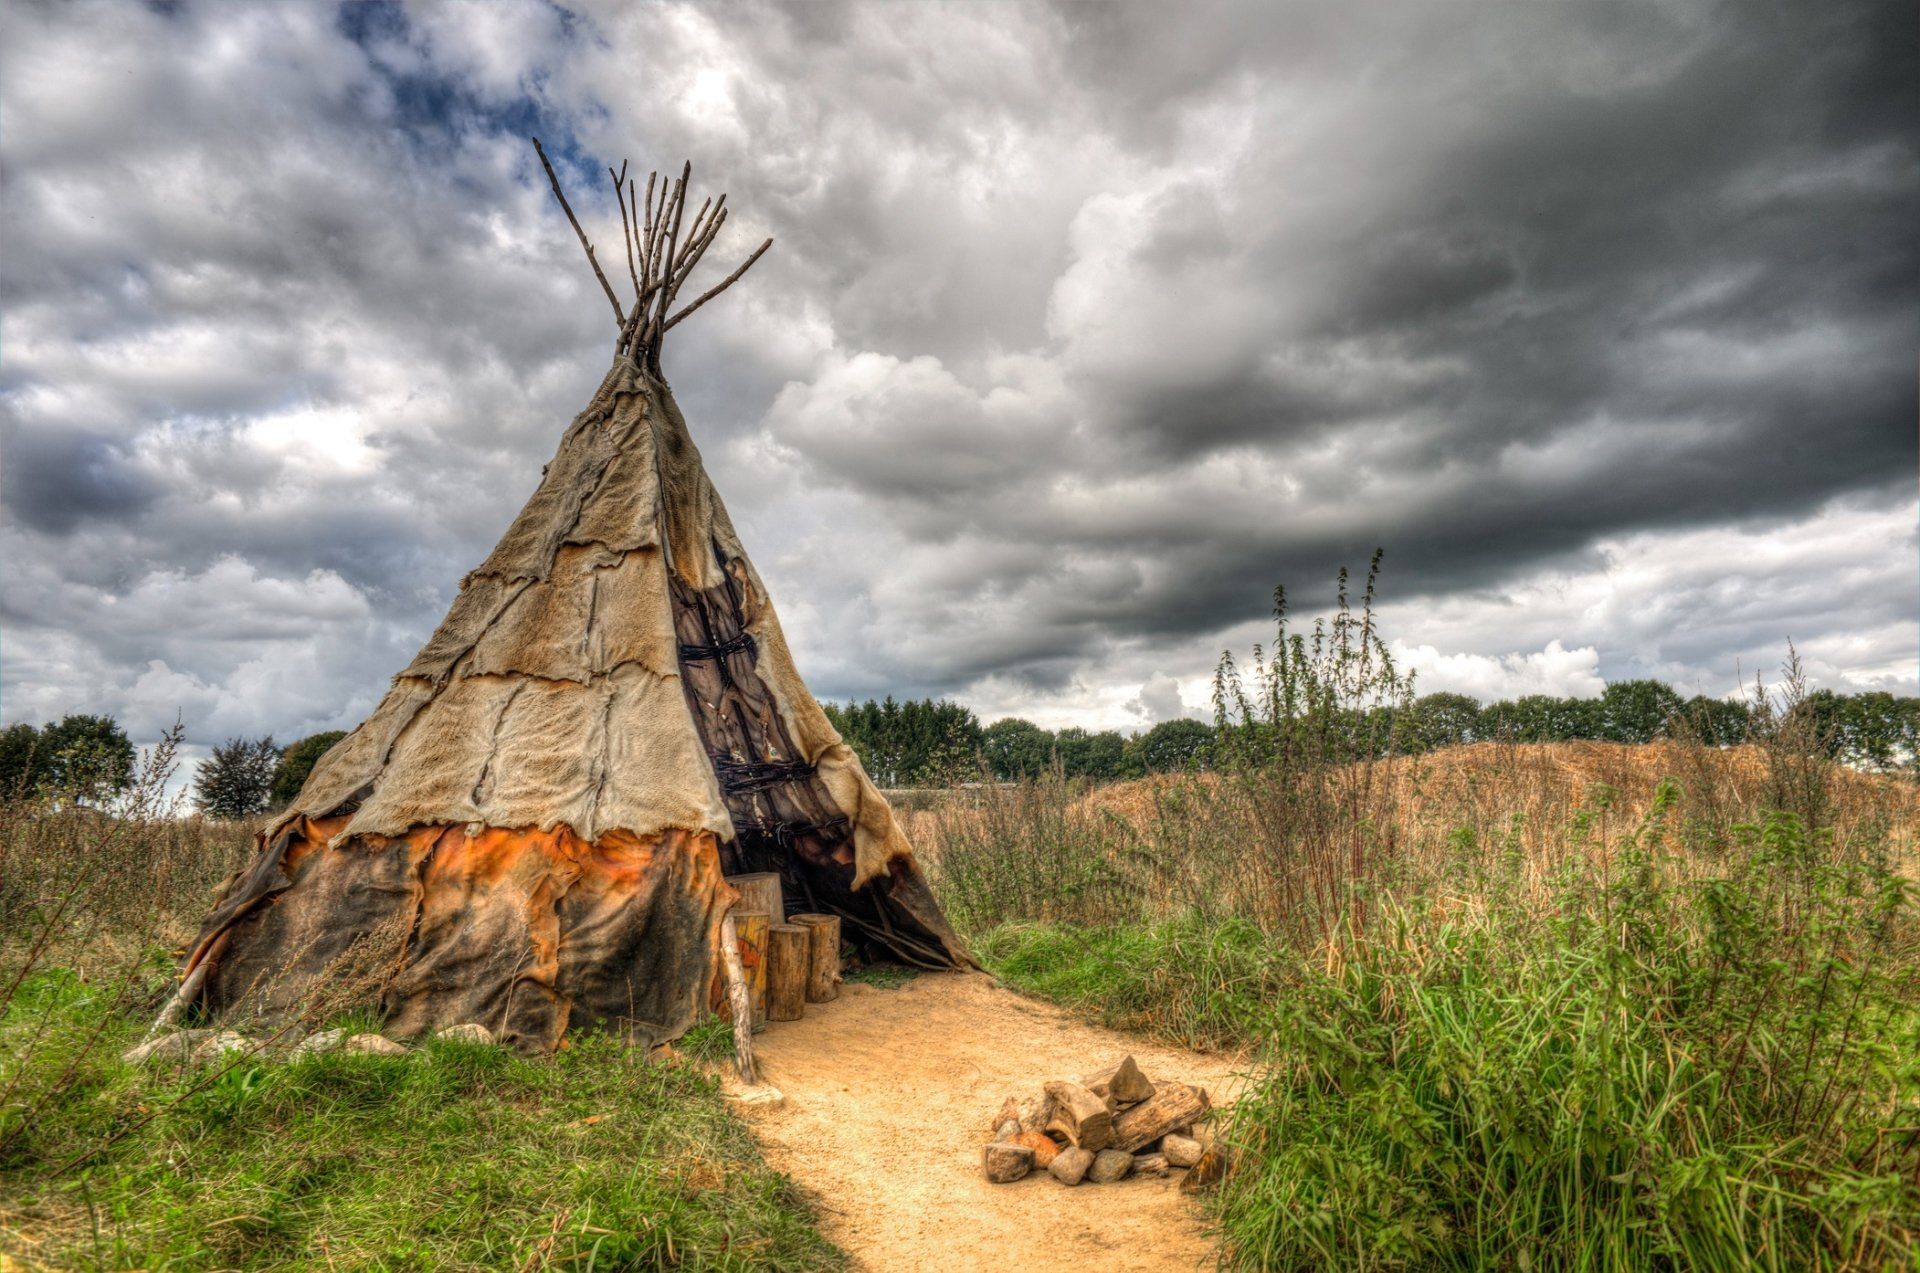 Native American Tipi Or Teepee Covered With Animal Skins